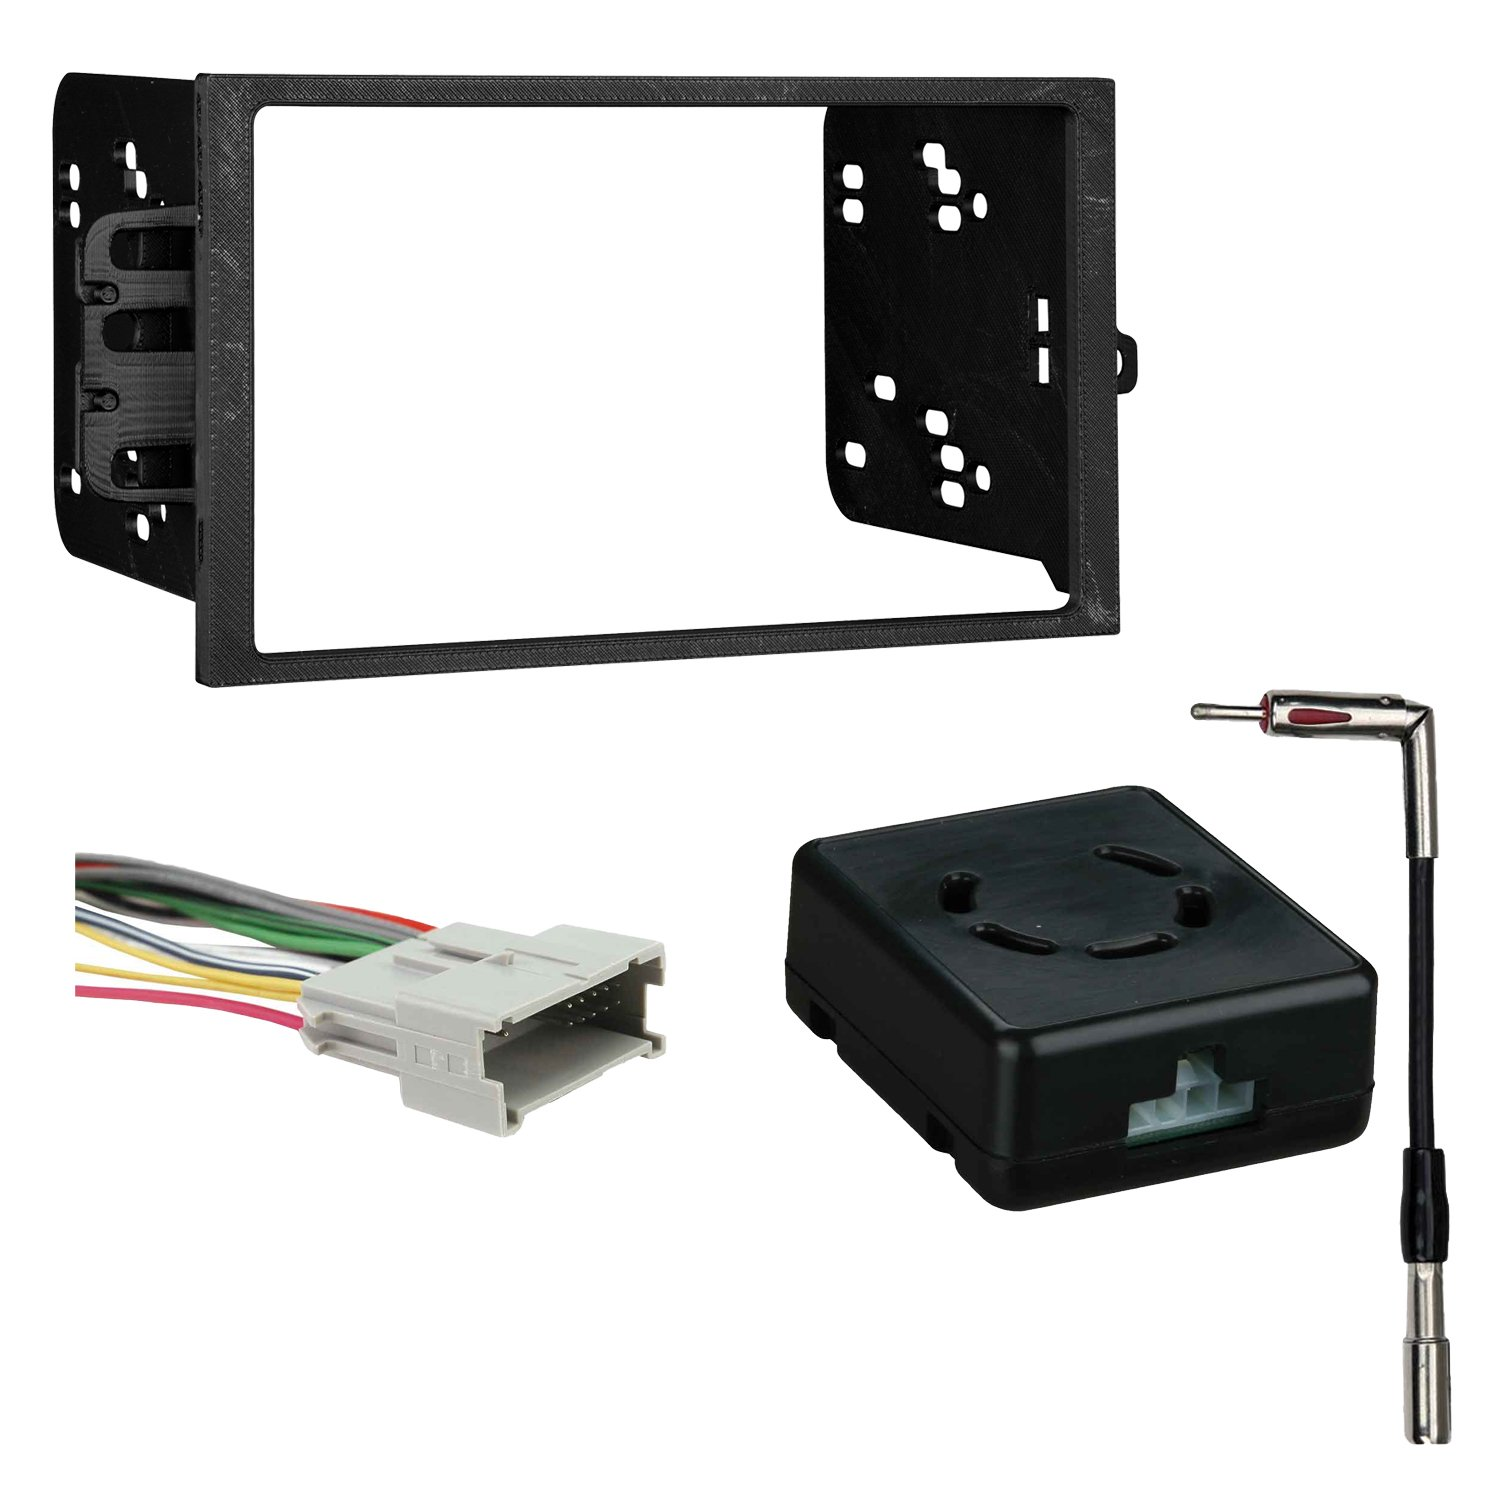 Metra 95-2001 2-DIN Dash Kit + Chime Retention Interface for Select 2000-10 GM METRA Ltd 95-2001 + LC-GMRC-01 + AD-GM1